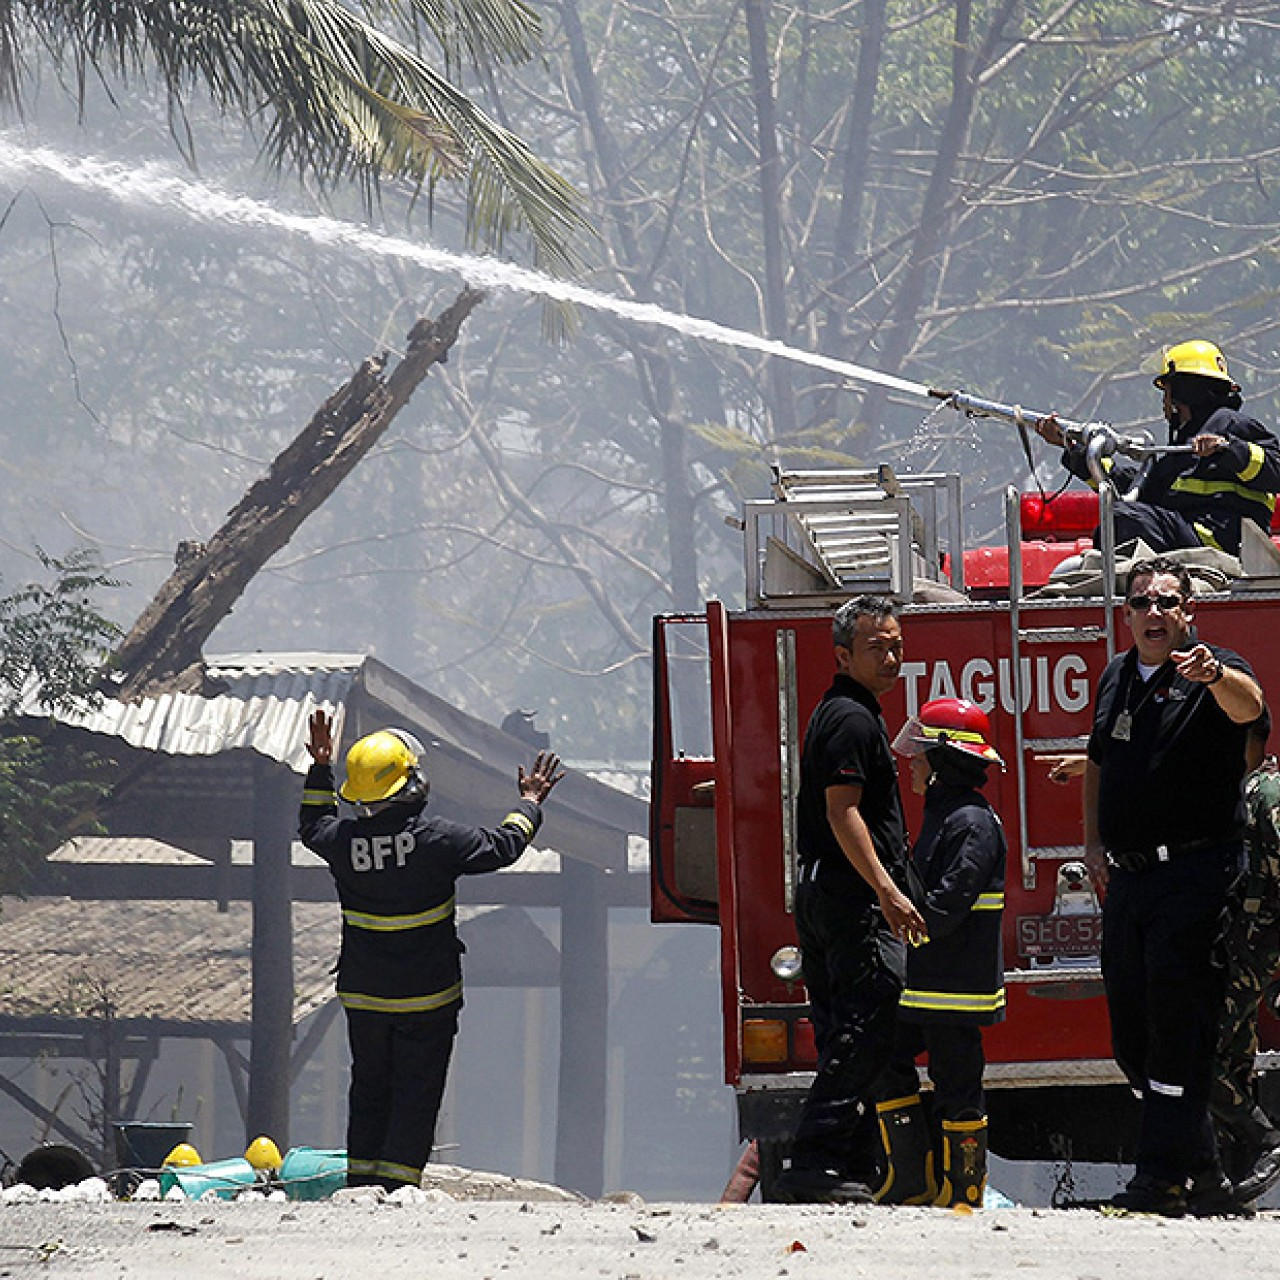 23 hurt as fire and blasts rock Philippines army munitions depot